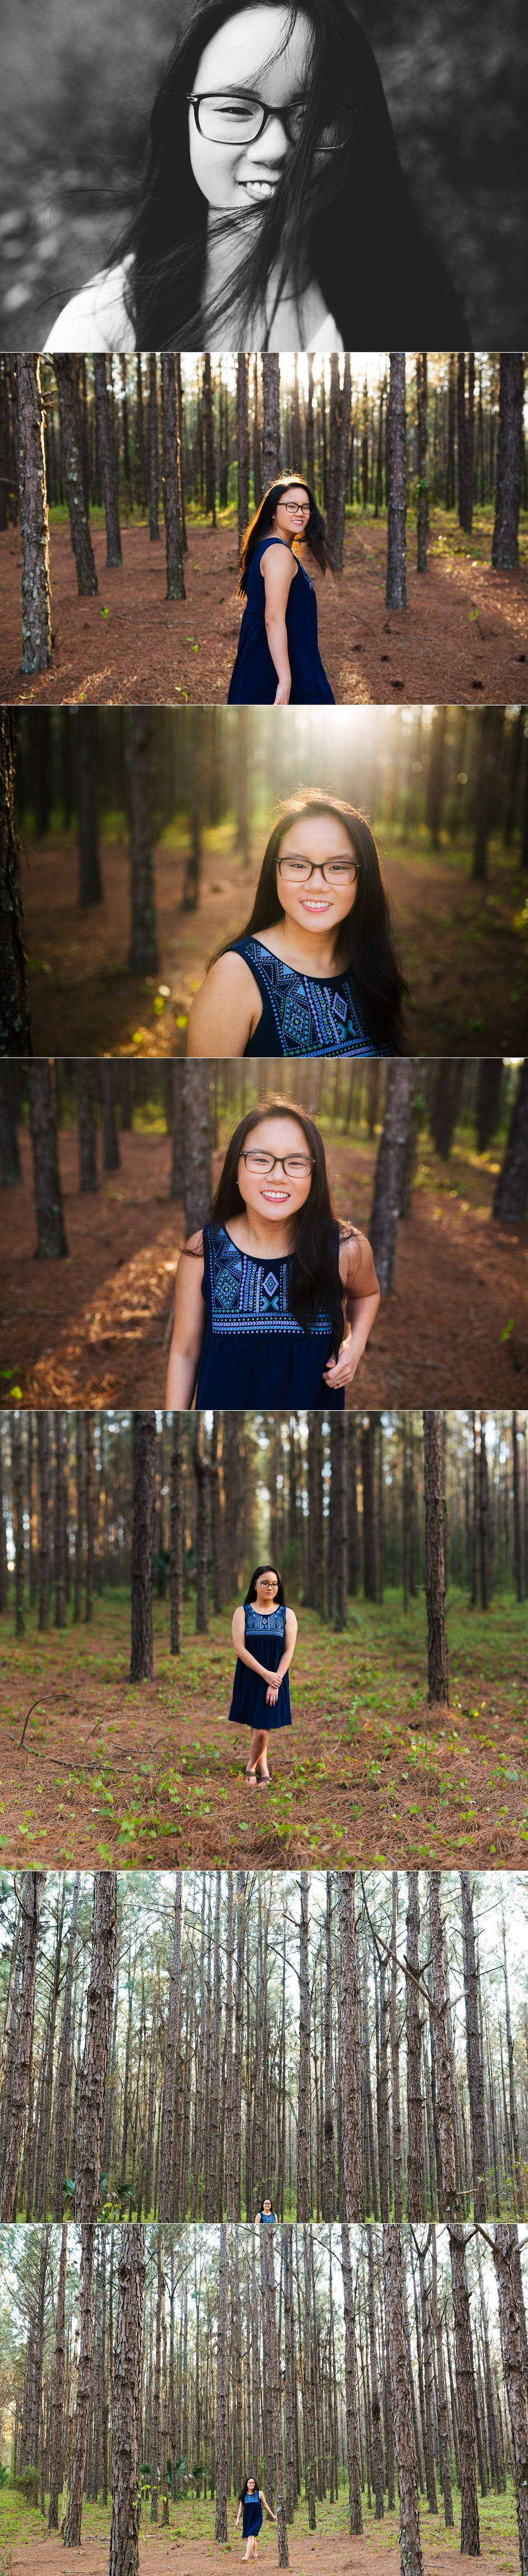 tampa bay nature woodsy senior portraits jade-6